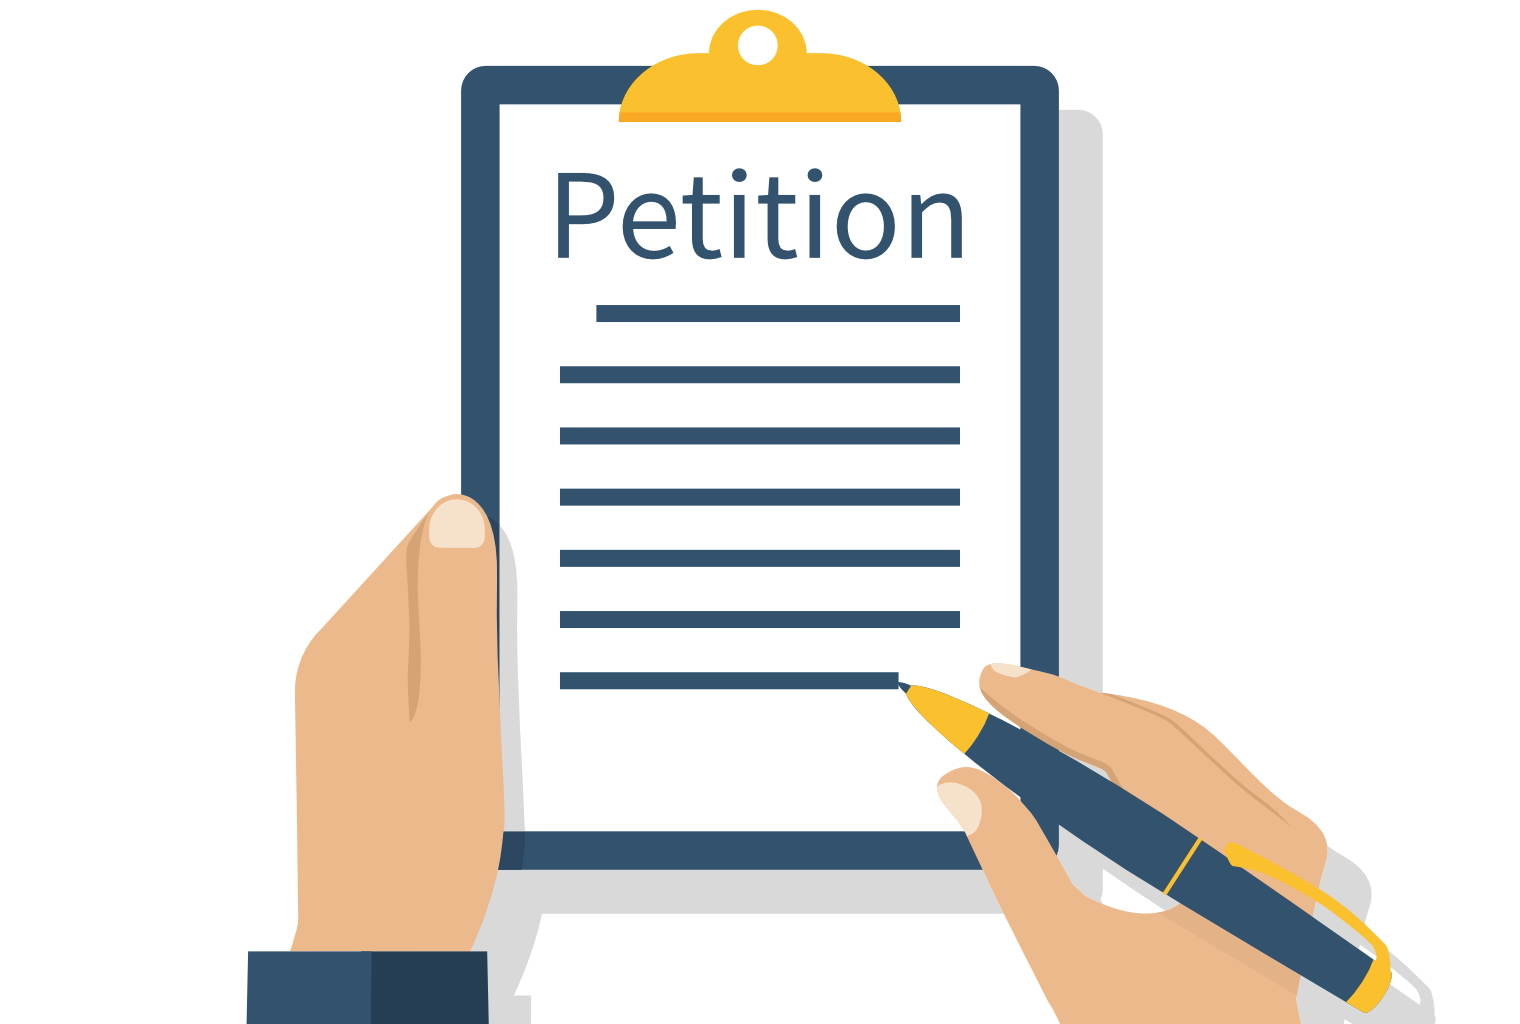 Indian Crypto Community Petitions Government for Regulation - Bitcoin News